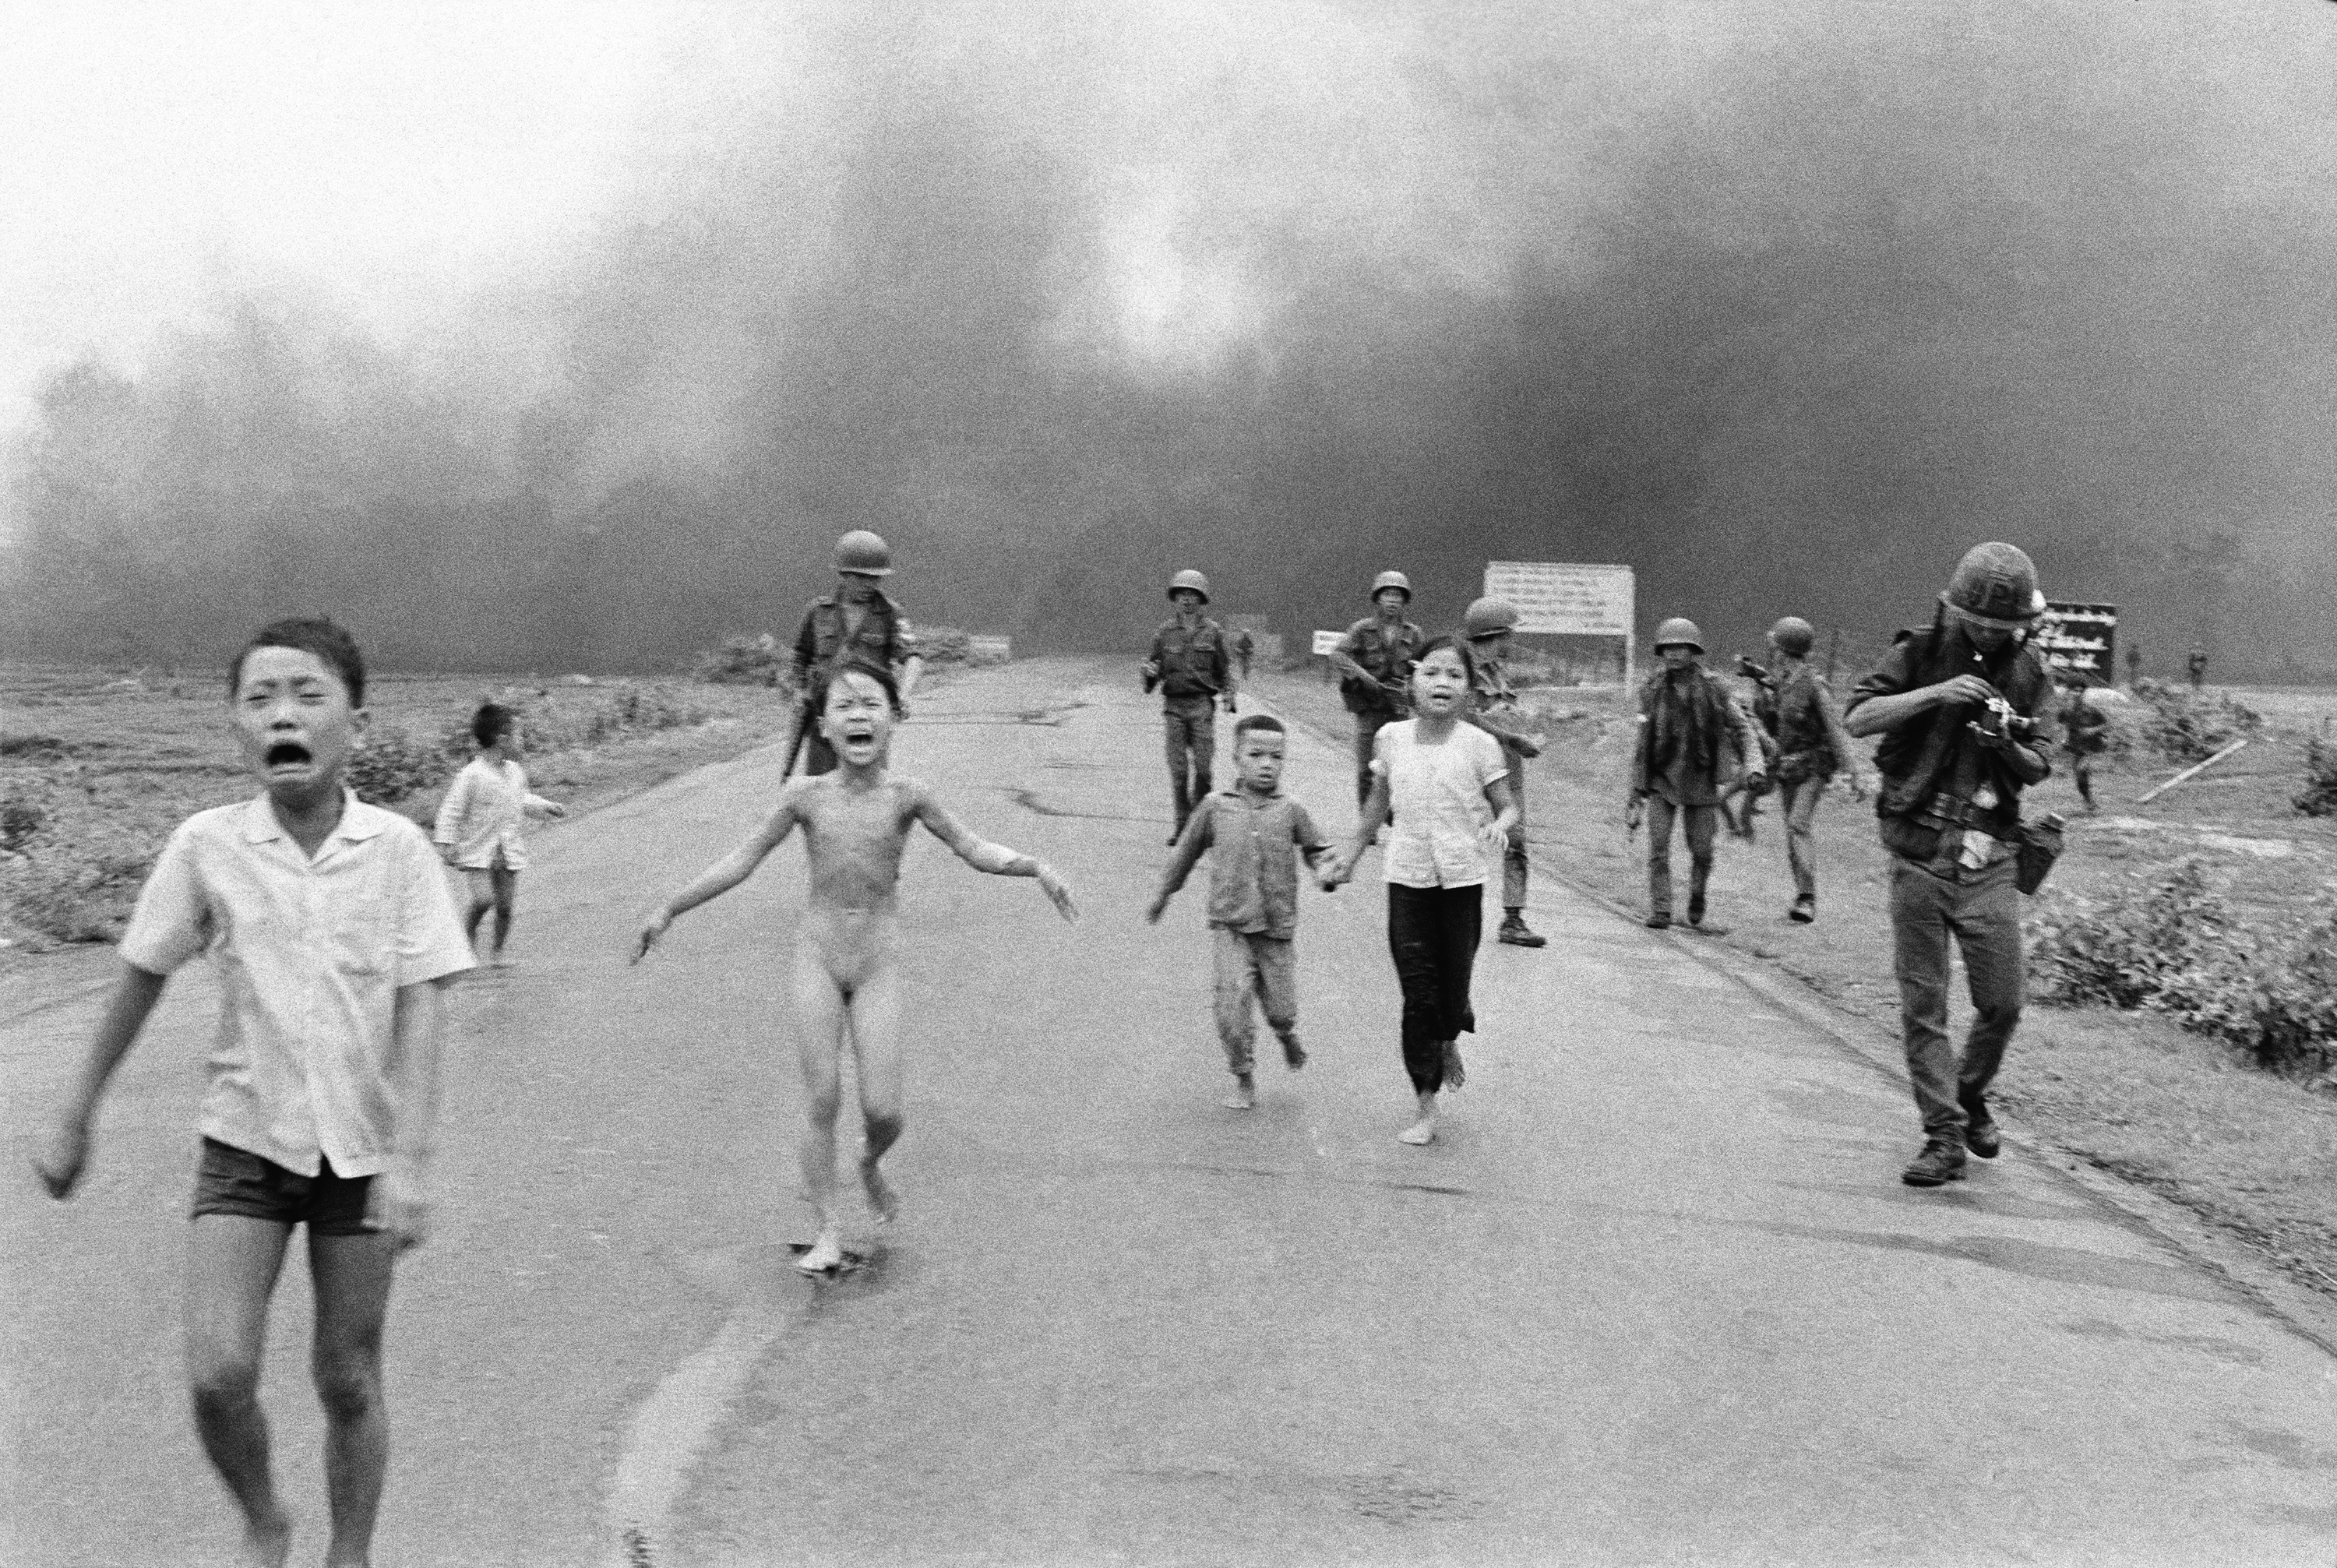 South Vietnamese forces follow after terrified children, including 9-year-old Kim Phuc, center, as they run down Route 1 near Trang Bang after an aerial napalm attack on suspected Viet Cong hiding places, June 8, 1972. A South Vietnamese plane accidentally dropped its flaming napalm on South Vietnamese troops and civilians. The terrified girl had ripped off her burning clothes while fleeing. The children from left to right are: Phan Thanh Tam, younger brother of Kim Phuc, who lost an eye, Phan Thanh Phouc, youngest brother of Kim Phuc, Kim Phuc, and Kim's cousins Ho Van Bon, and Ho Thi Ting. Behind them are soldiers of the Vietnam Army 25th Division. (AP Photo/Nick Ut)